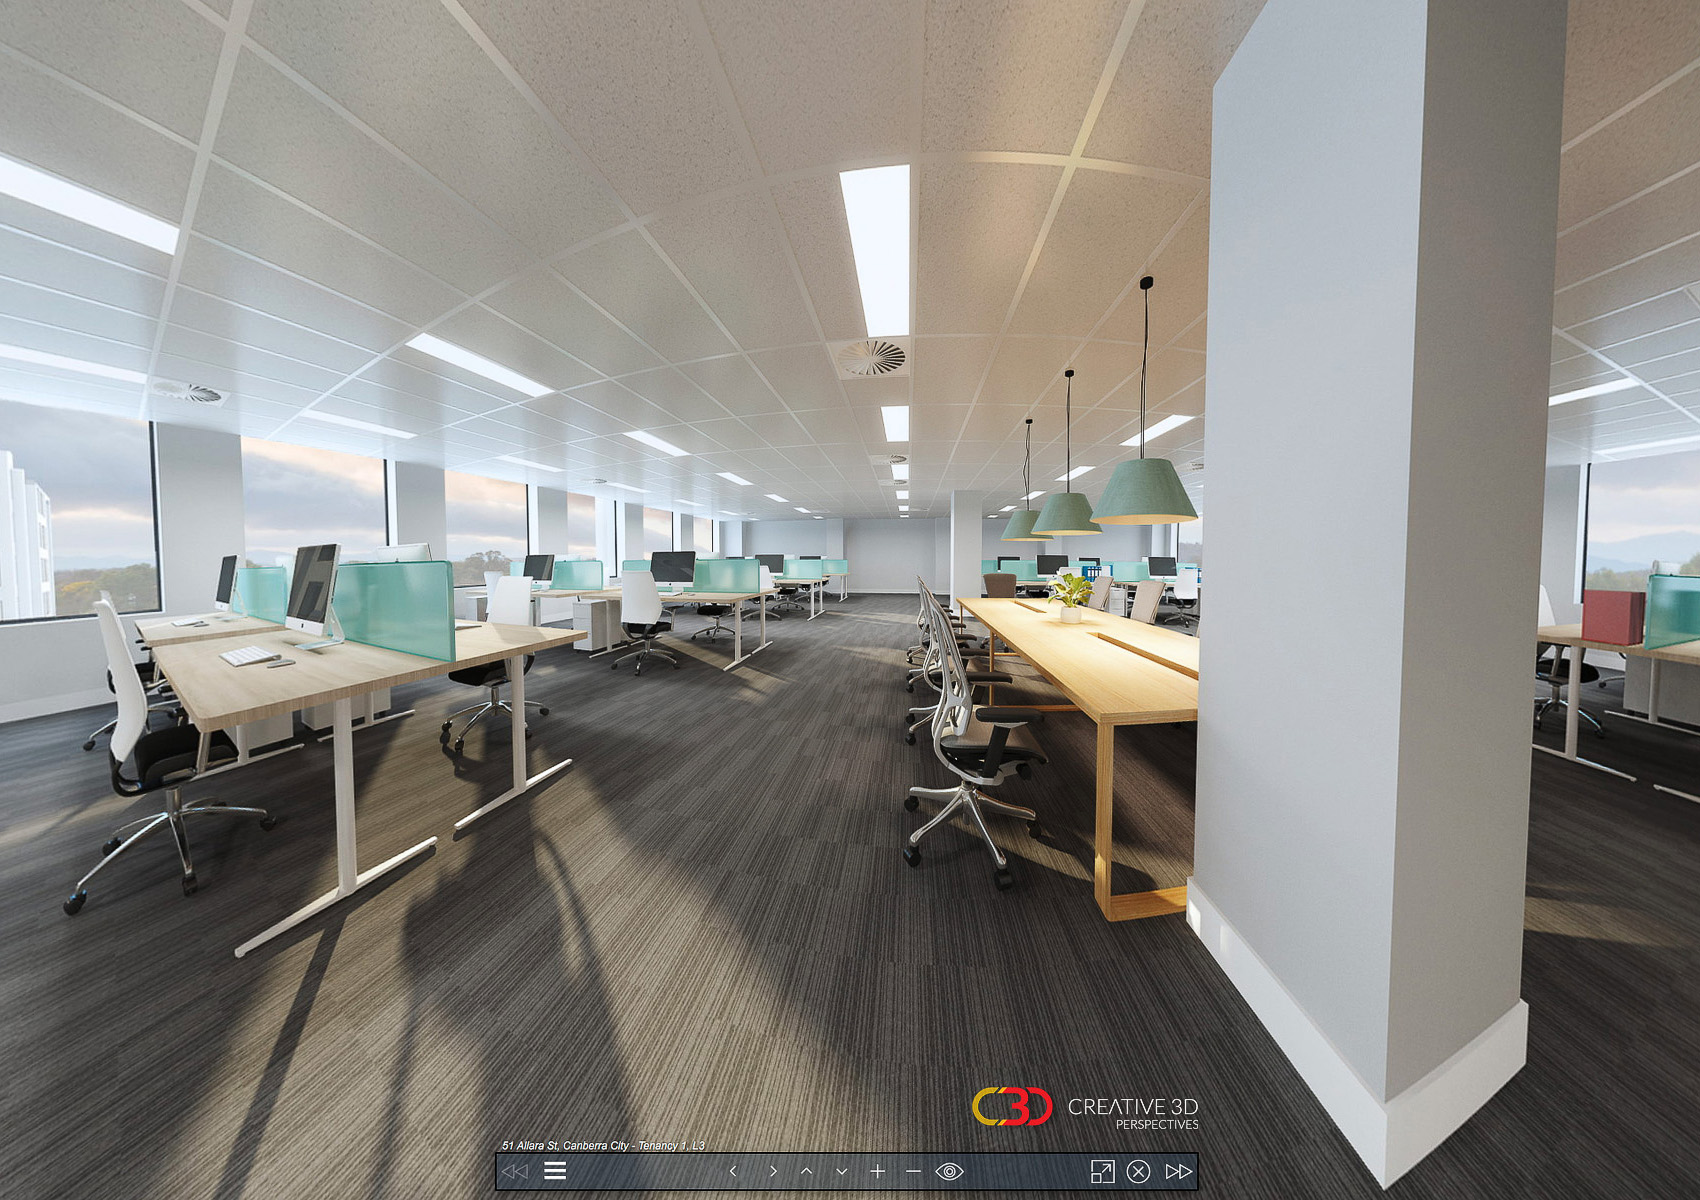 Creative 3D Perspective interior office screenshot from a virtual tour